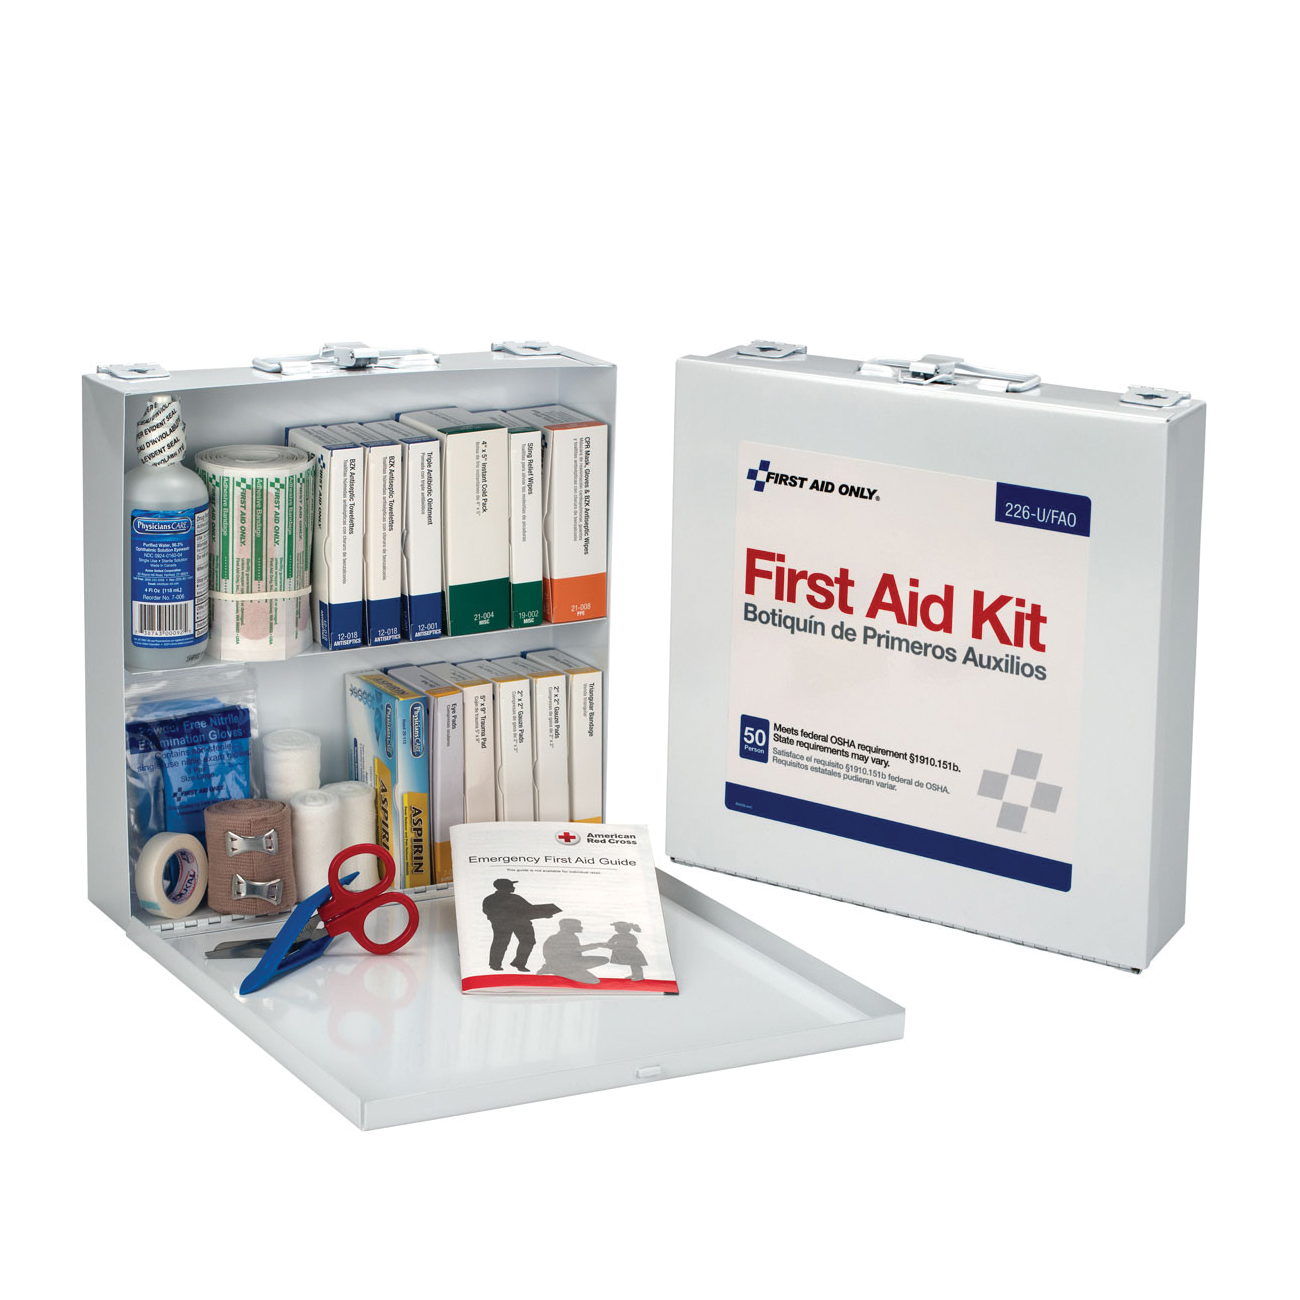 First Aid Only®226-U/FAO